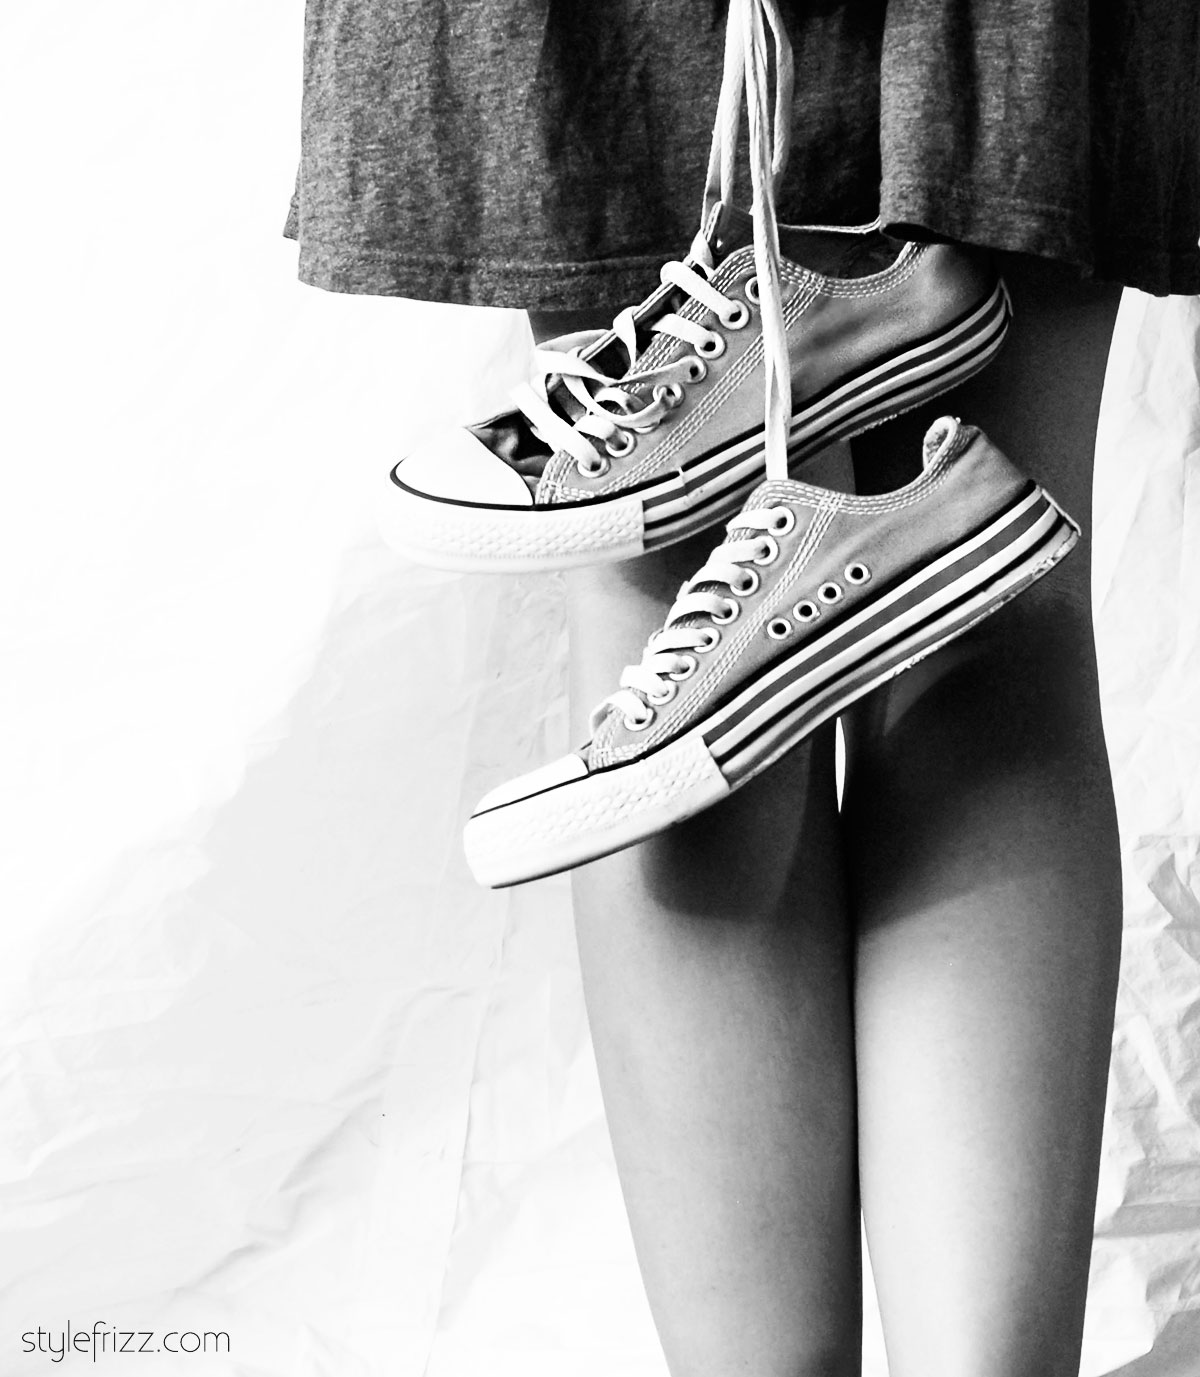 converse black and white worn out stylefrizz